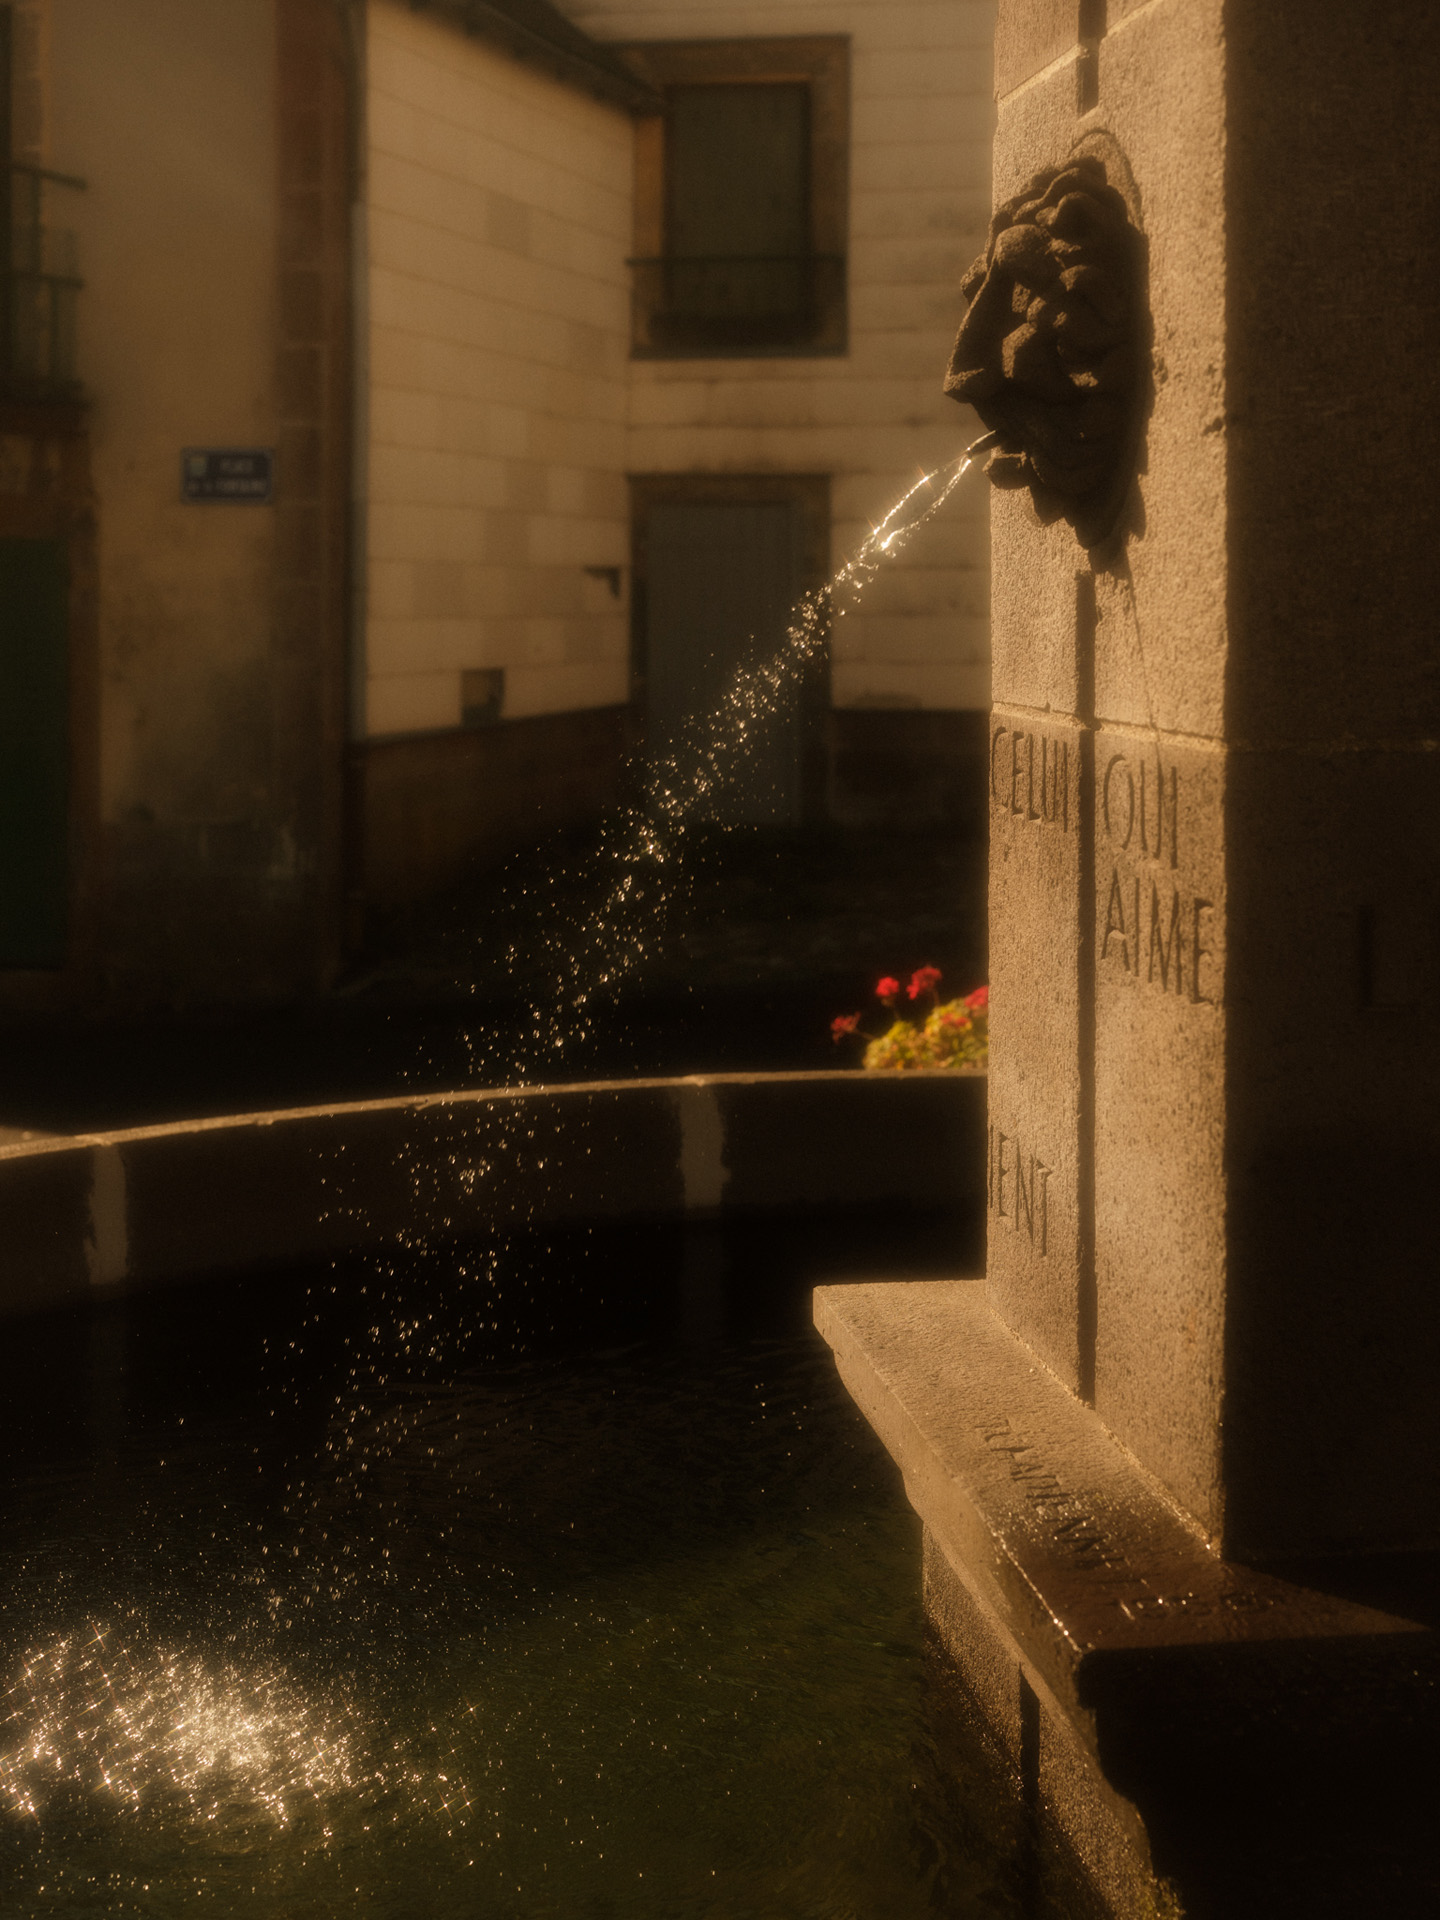 fountain with lionhead spitting water in the sun by Alexi Hobbs in Auvergne for Reflets de France